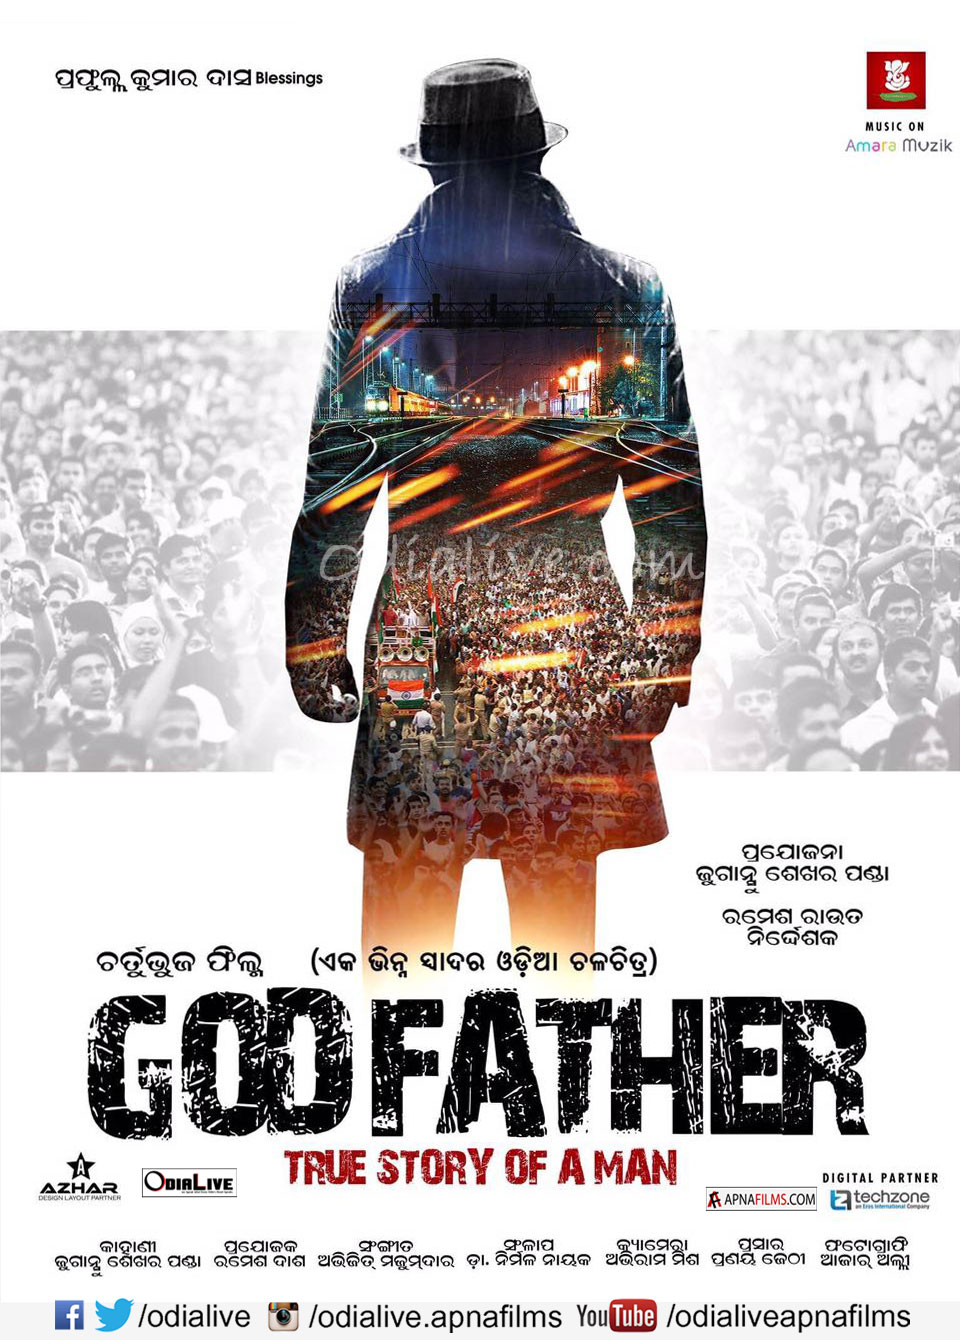 Watch God Father Odia Film trailer 3